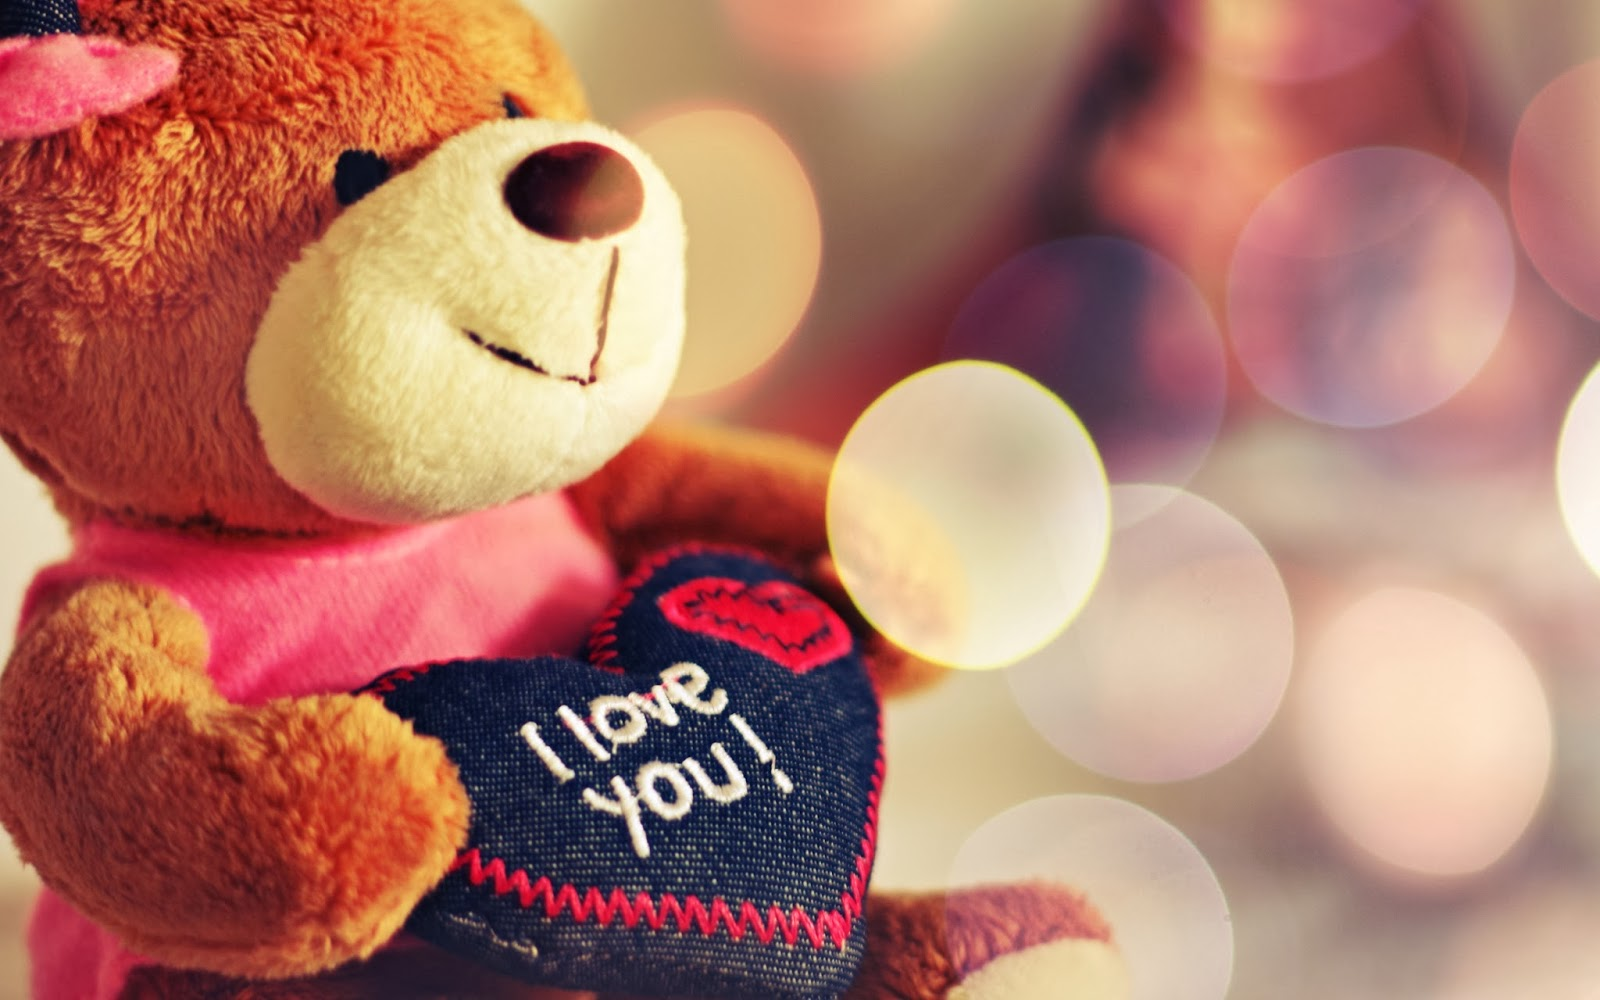 Hot girl wallpaper cute teddy bear i love you hd wallpapers cute teddy bear i love you hd wallpapers images pictures photos gallery free download buycottarizona Images